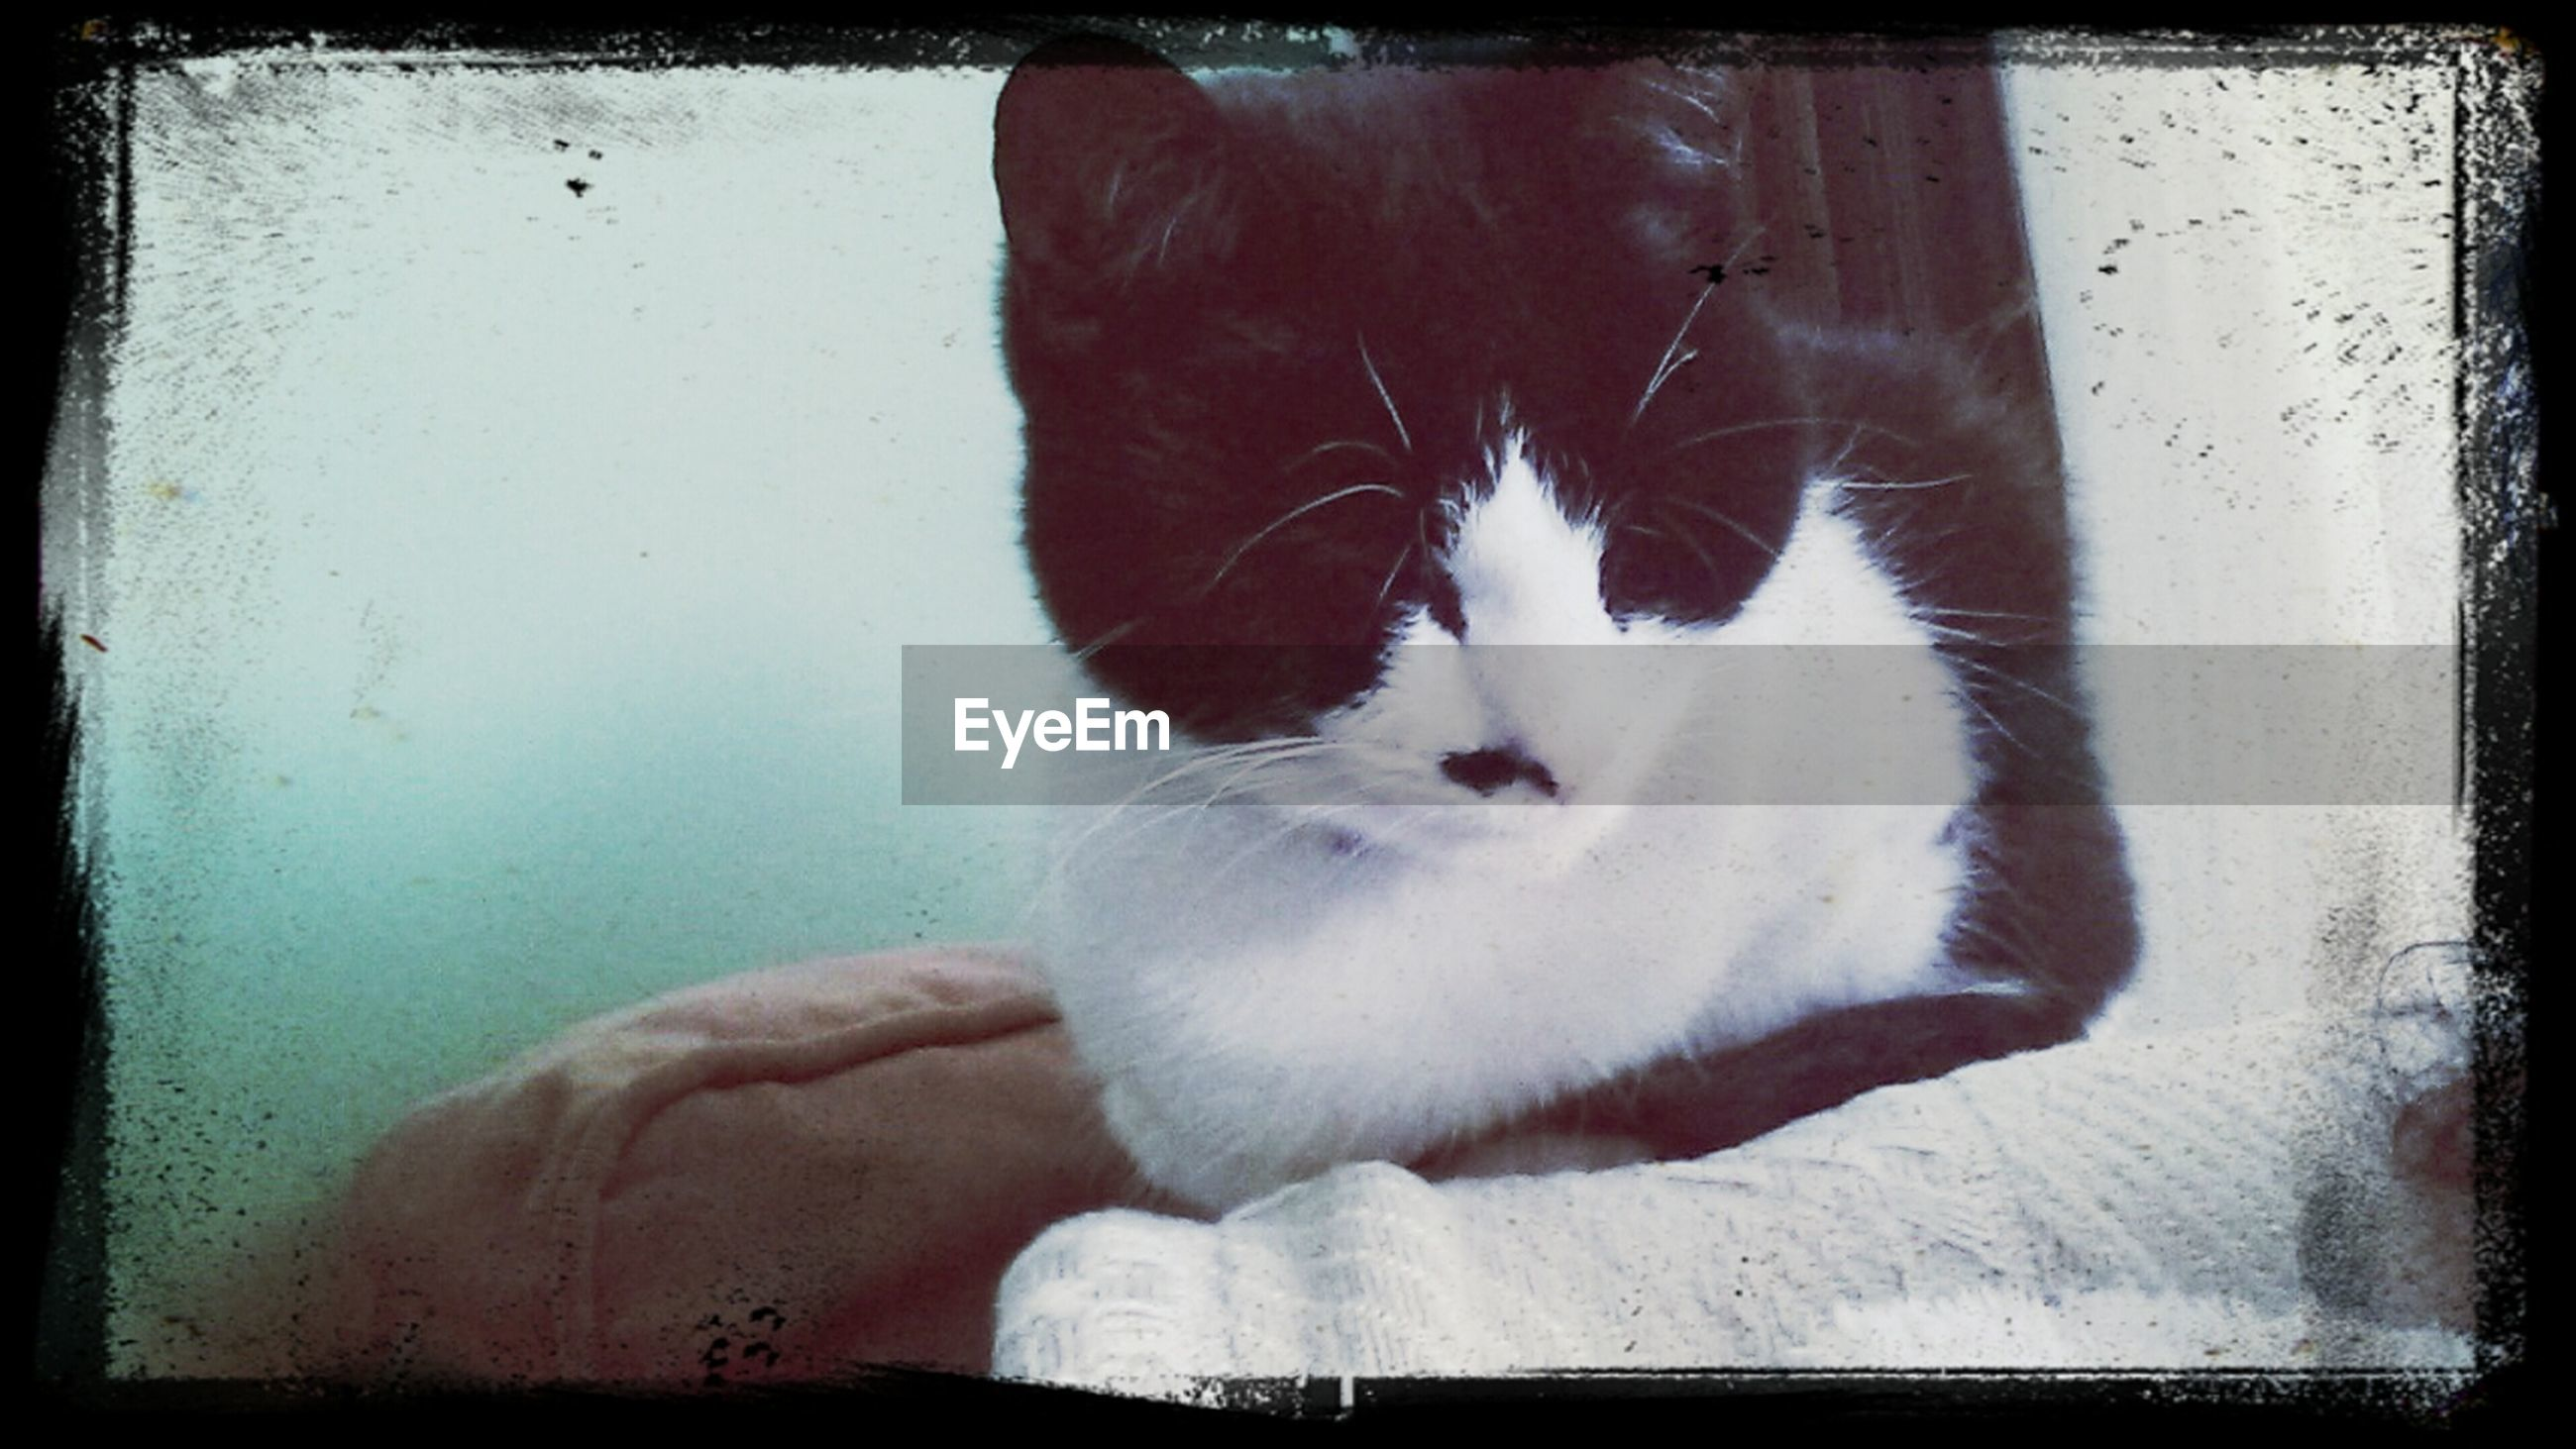 domestic cat, cat, pets, domestic animals, animal themes, one animal, feline, mammal, indoors, transfer print, whisker, auto post production filter, relaxation, home interior, close-up, portrait, white color, resting, looking at camera, zoology